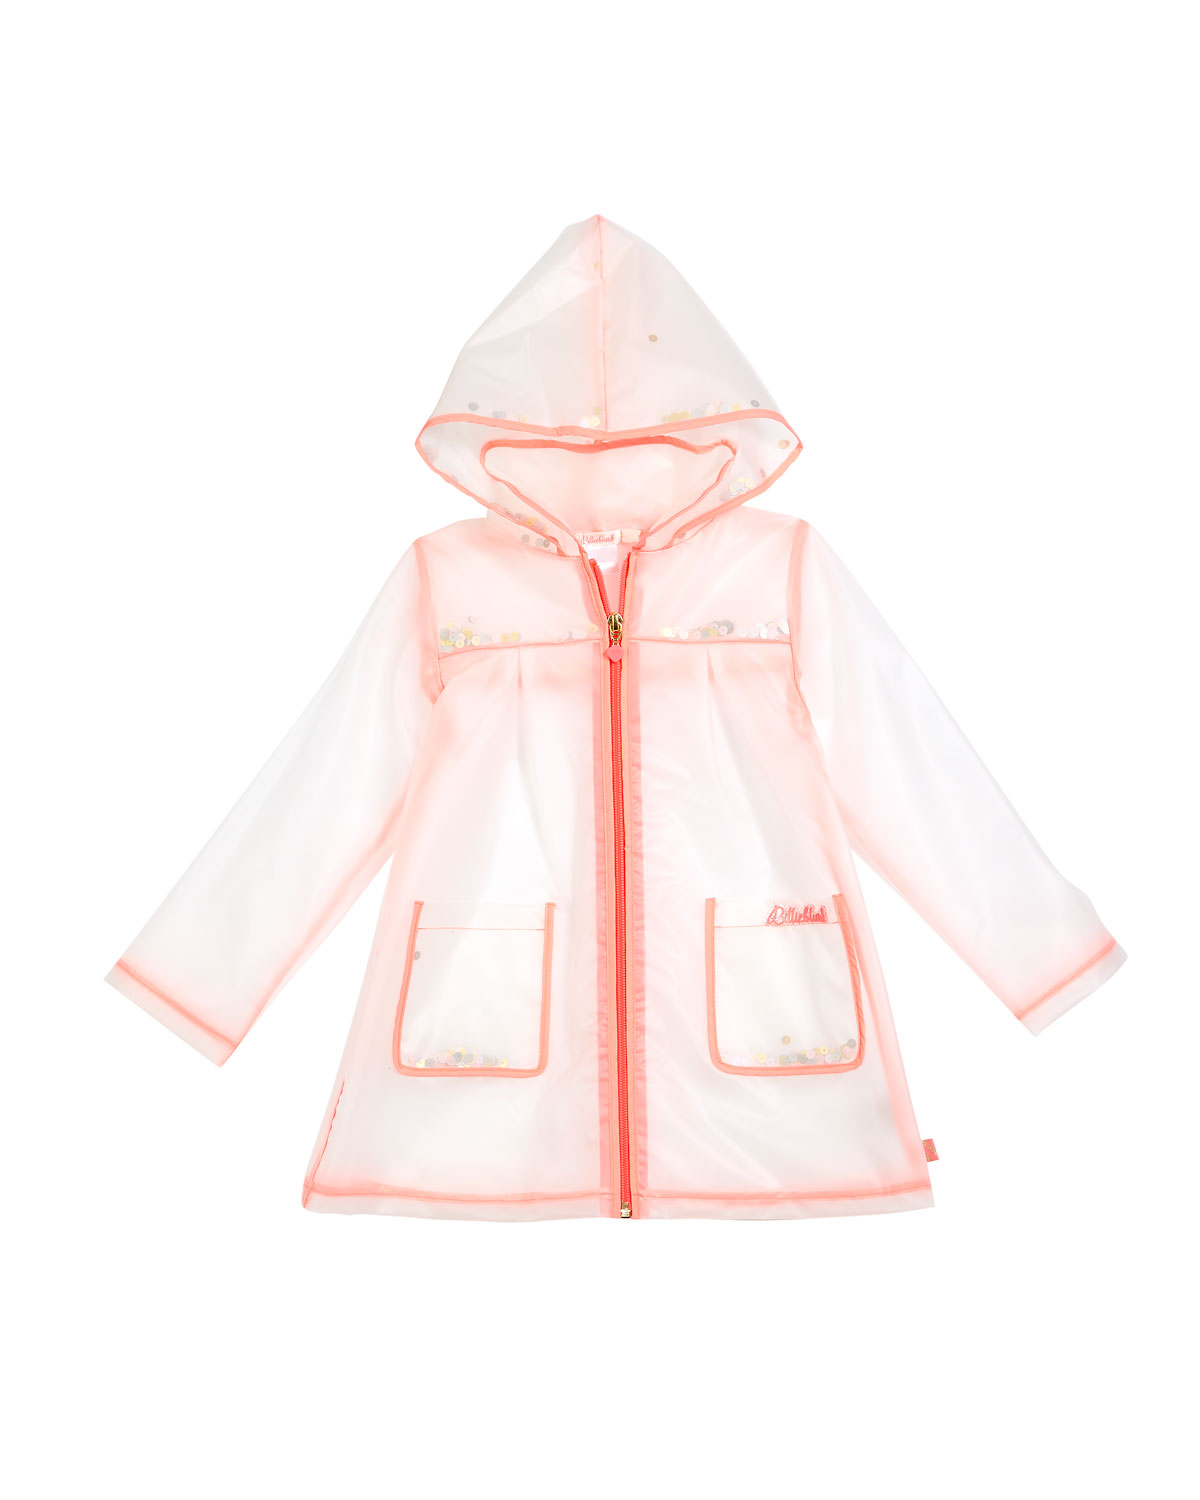 Transparent Sequin Raincoat, Size 4-8